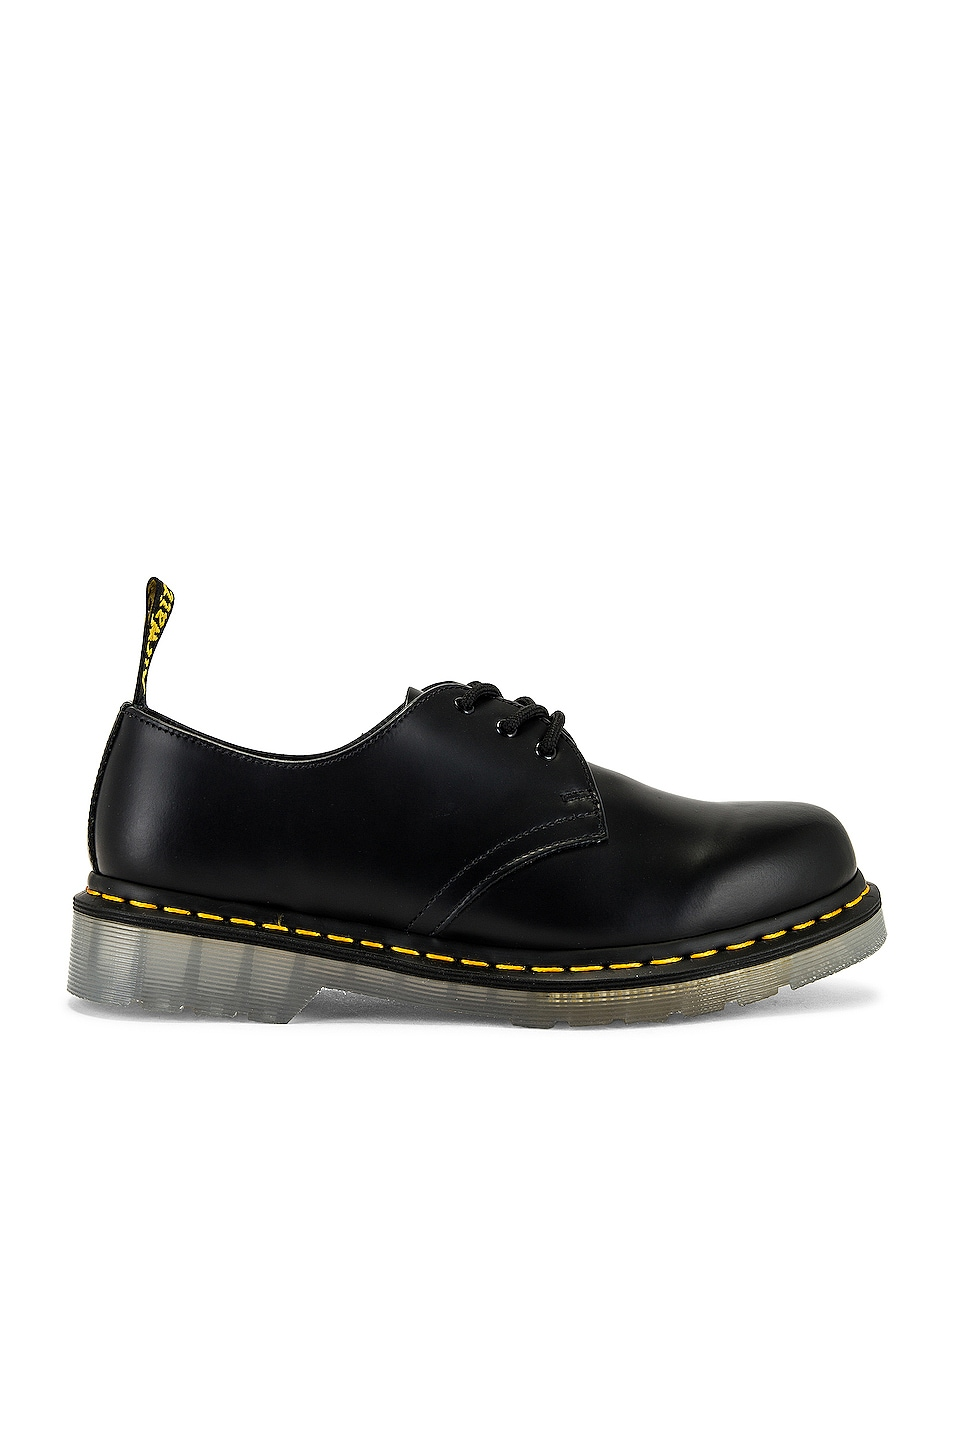 Image 1 of Dr. Martens 1461 Iced in Black